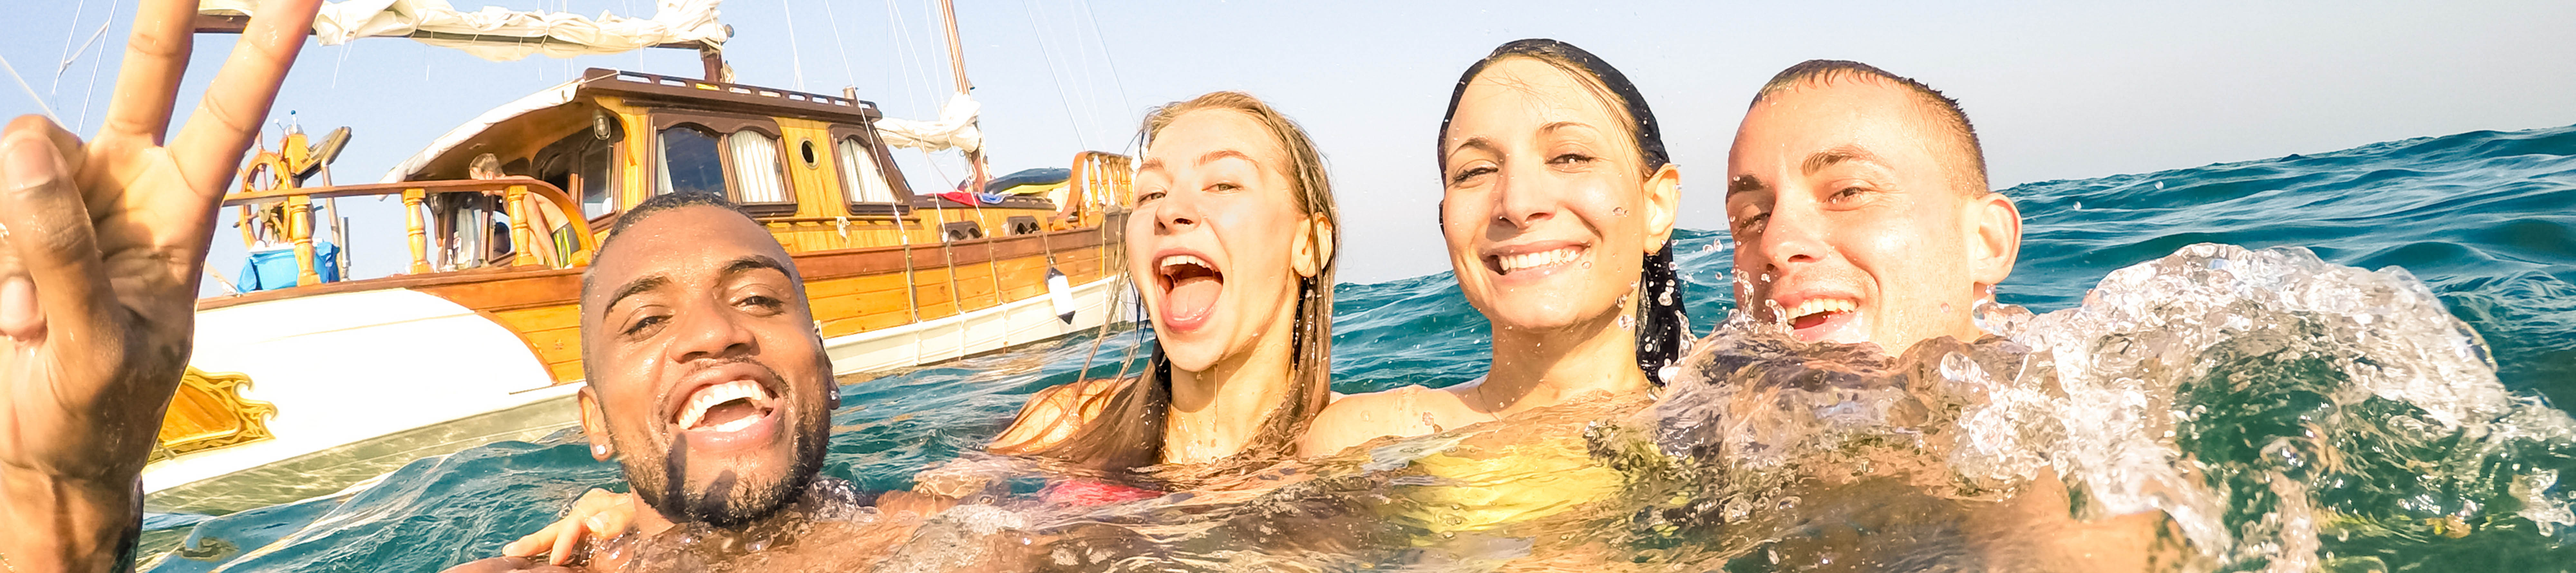 Finding-Fun-on-Your-Family-Vacation-4